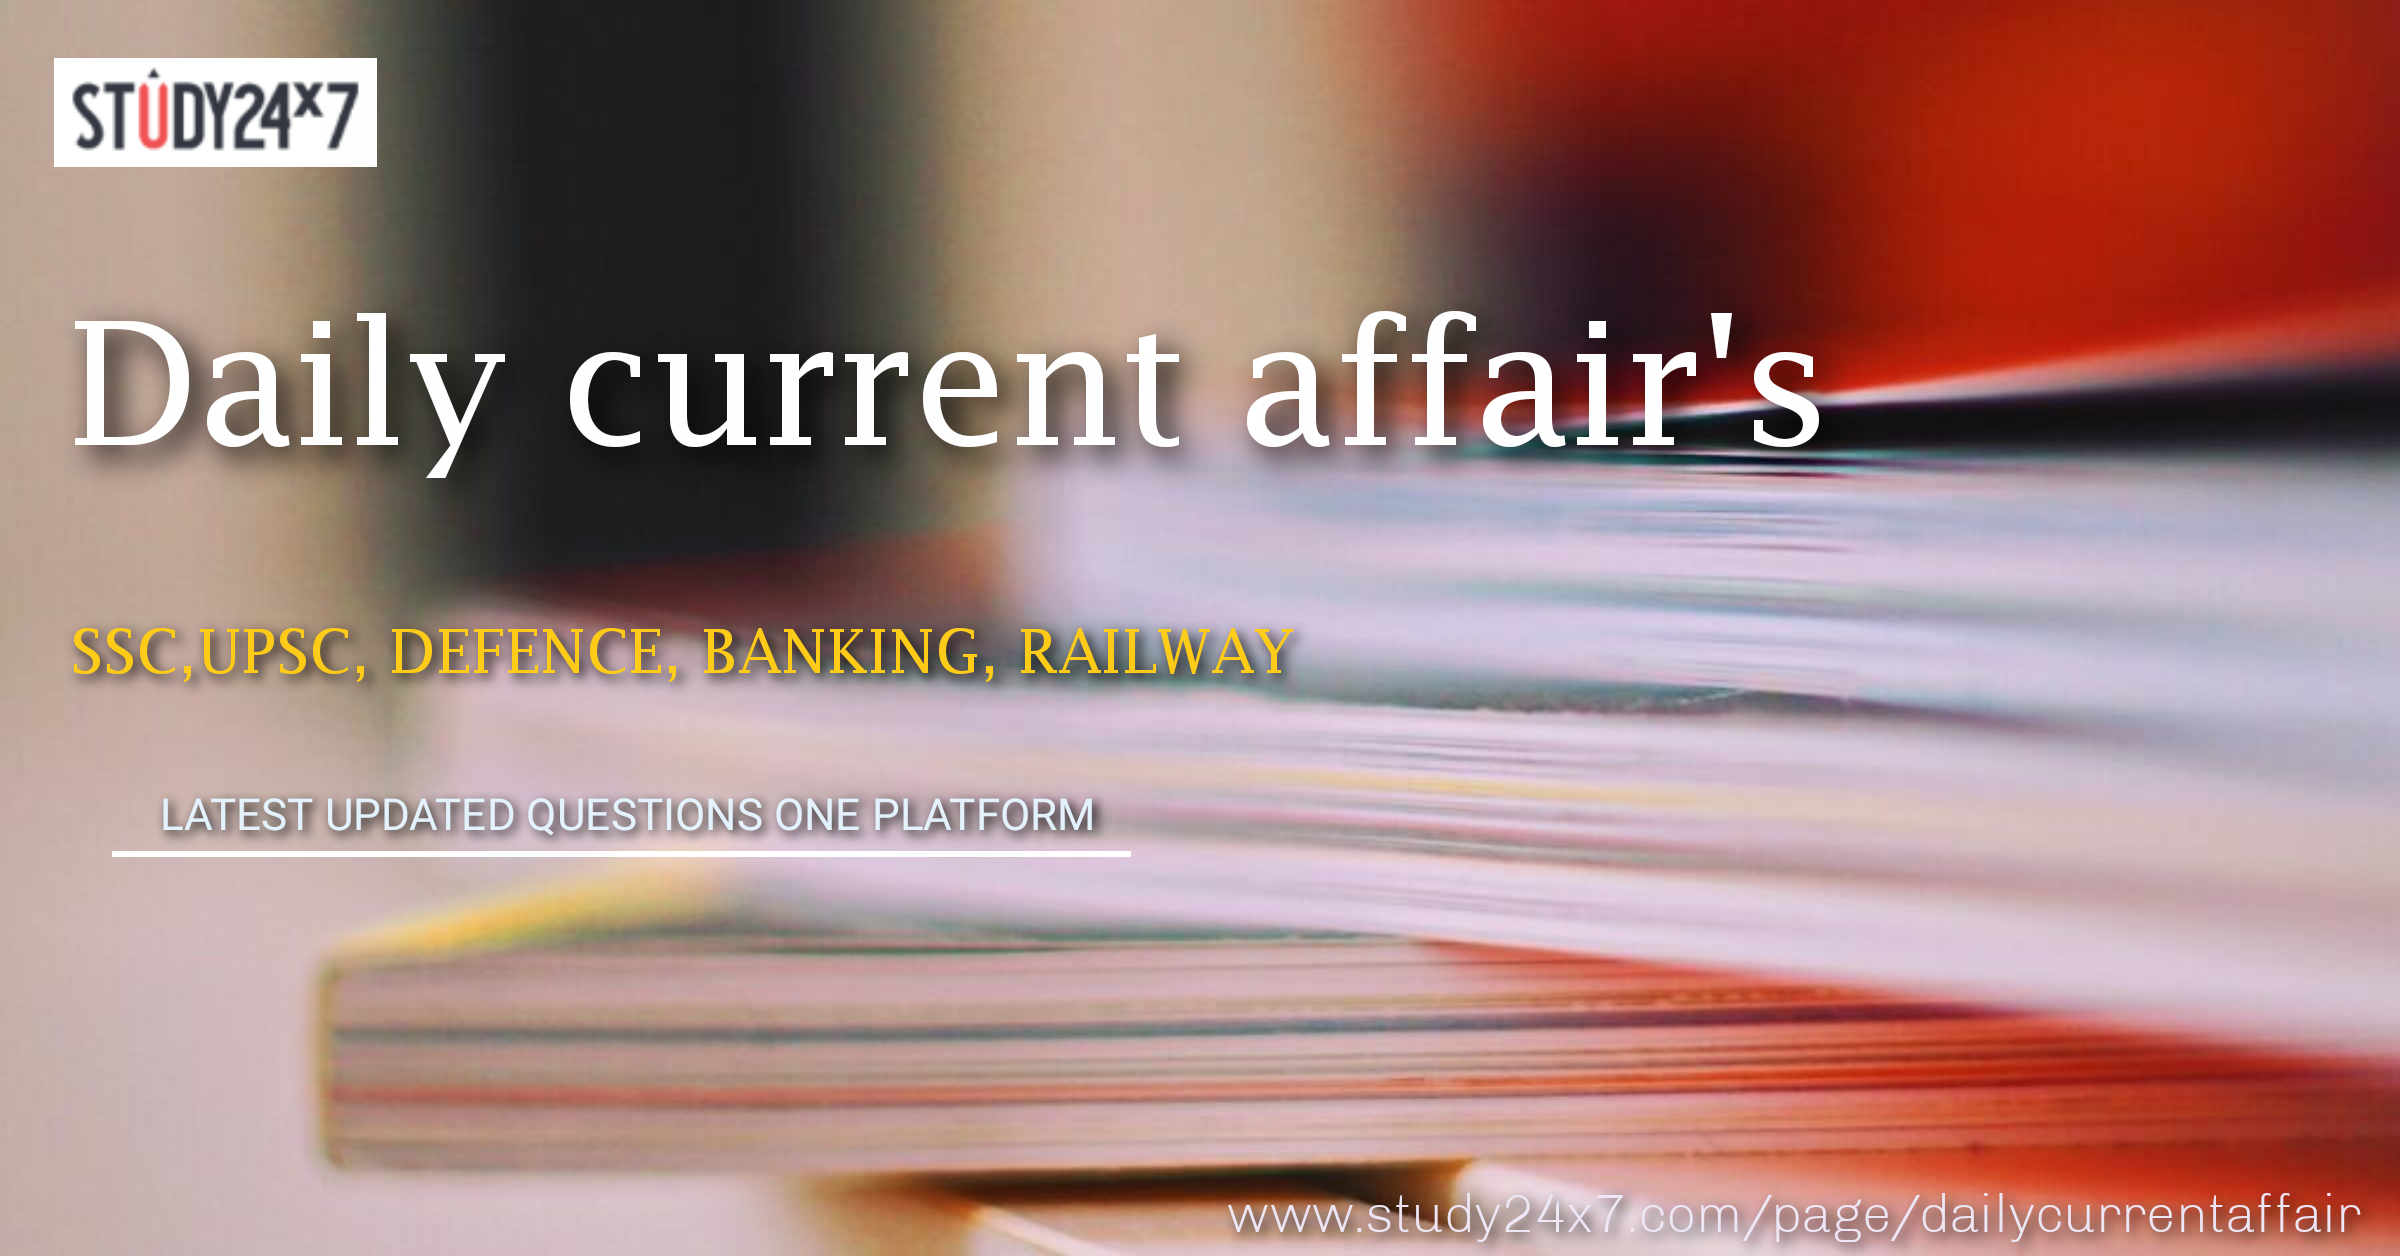 21 June 2020 Daily Current Affairs For Latest Questions Updated (HINDI)